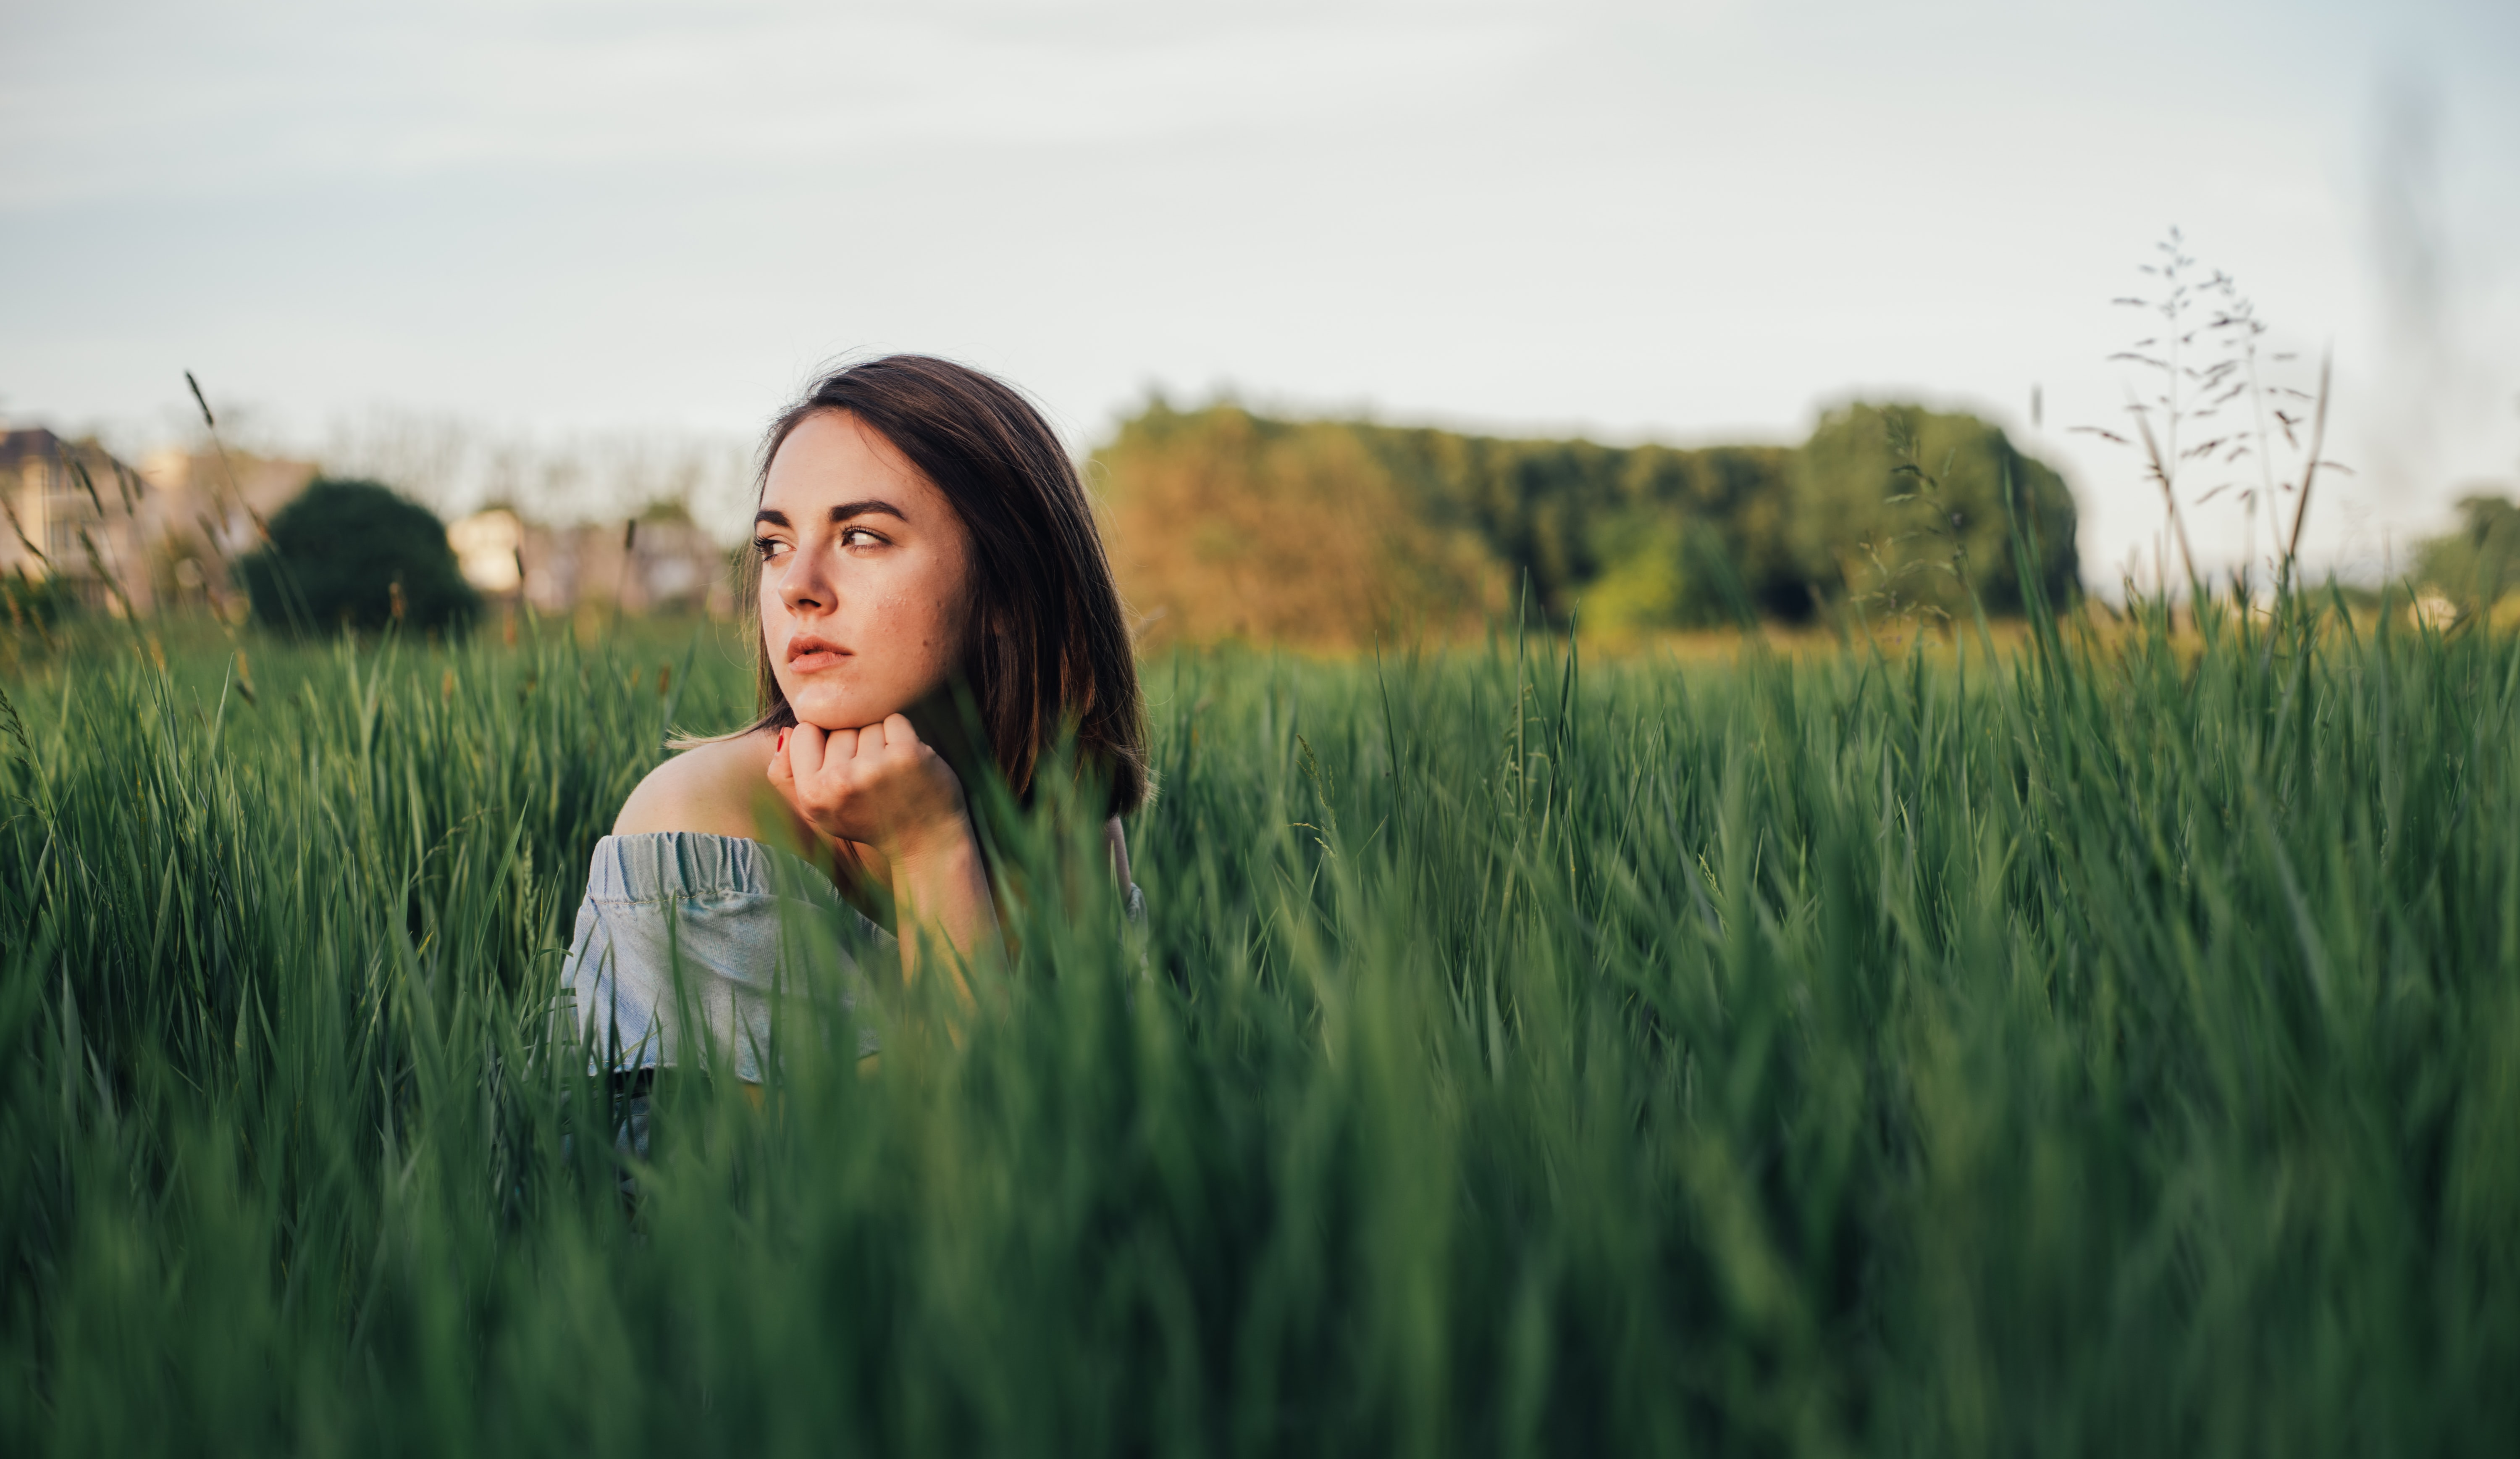 selective focus photo of woman near grass field